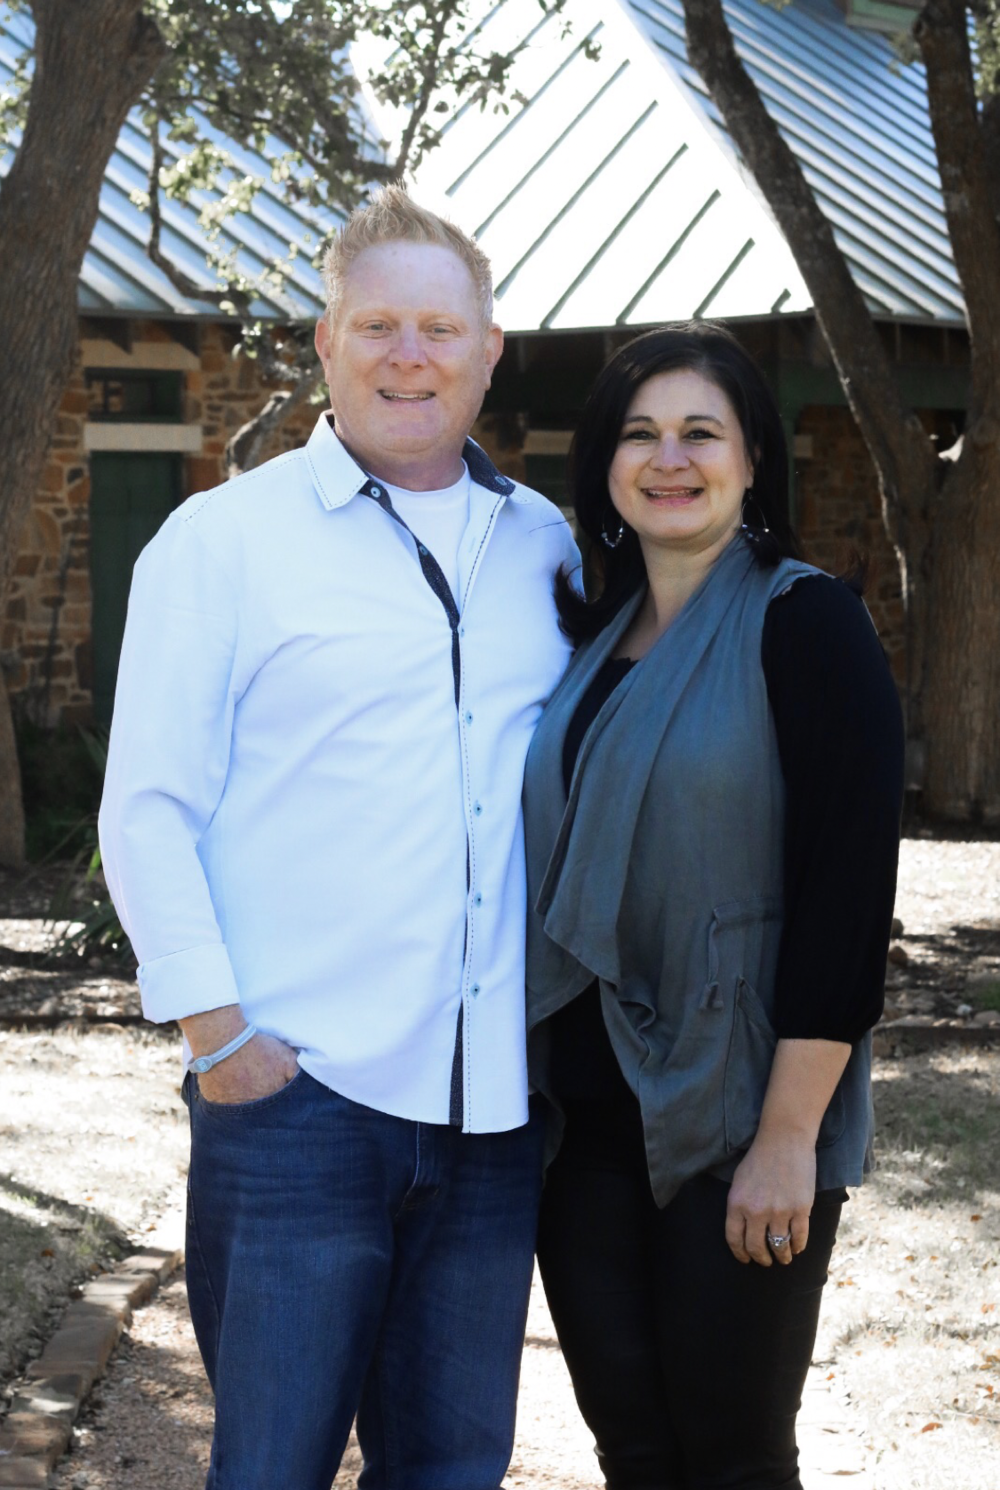 John & Melissa Fanning  Small Groups Pastor   John is our Small Groups Pastor overseeing all of our Small Groups. Melissa leads our Women's Freedom Small Groups. They are passionate about seeing people Find Freedom through authentic relationships!